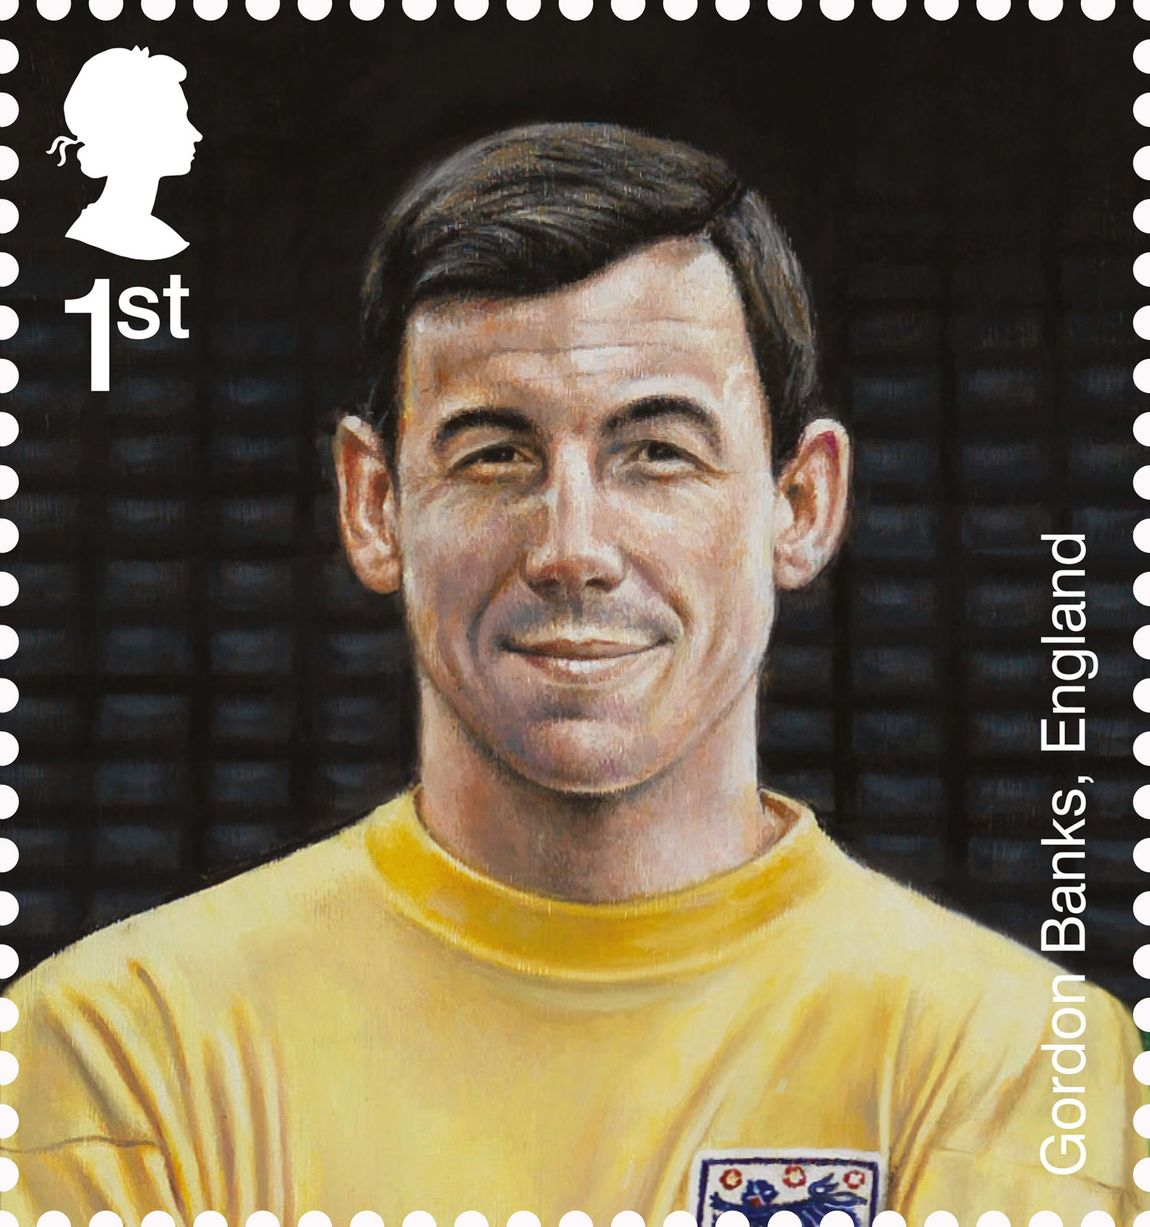 newfootballstamps-gordonbanks.jpg